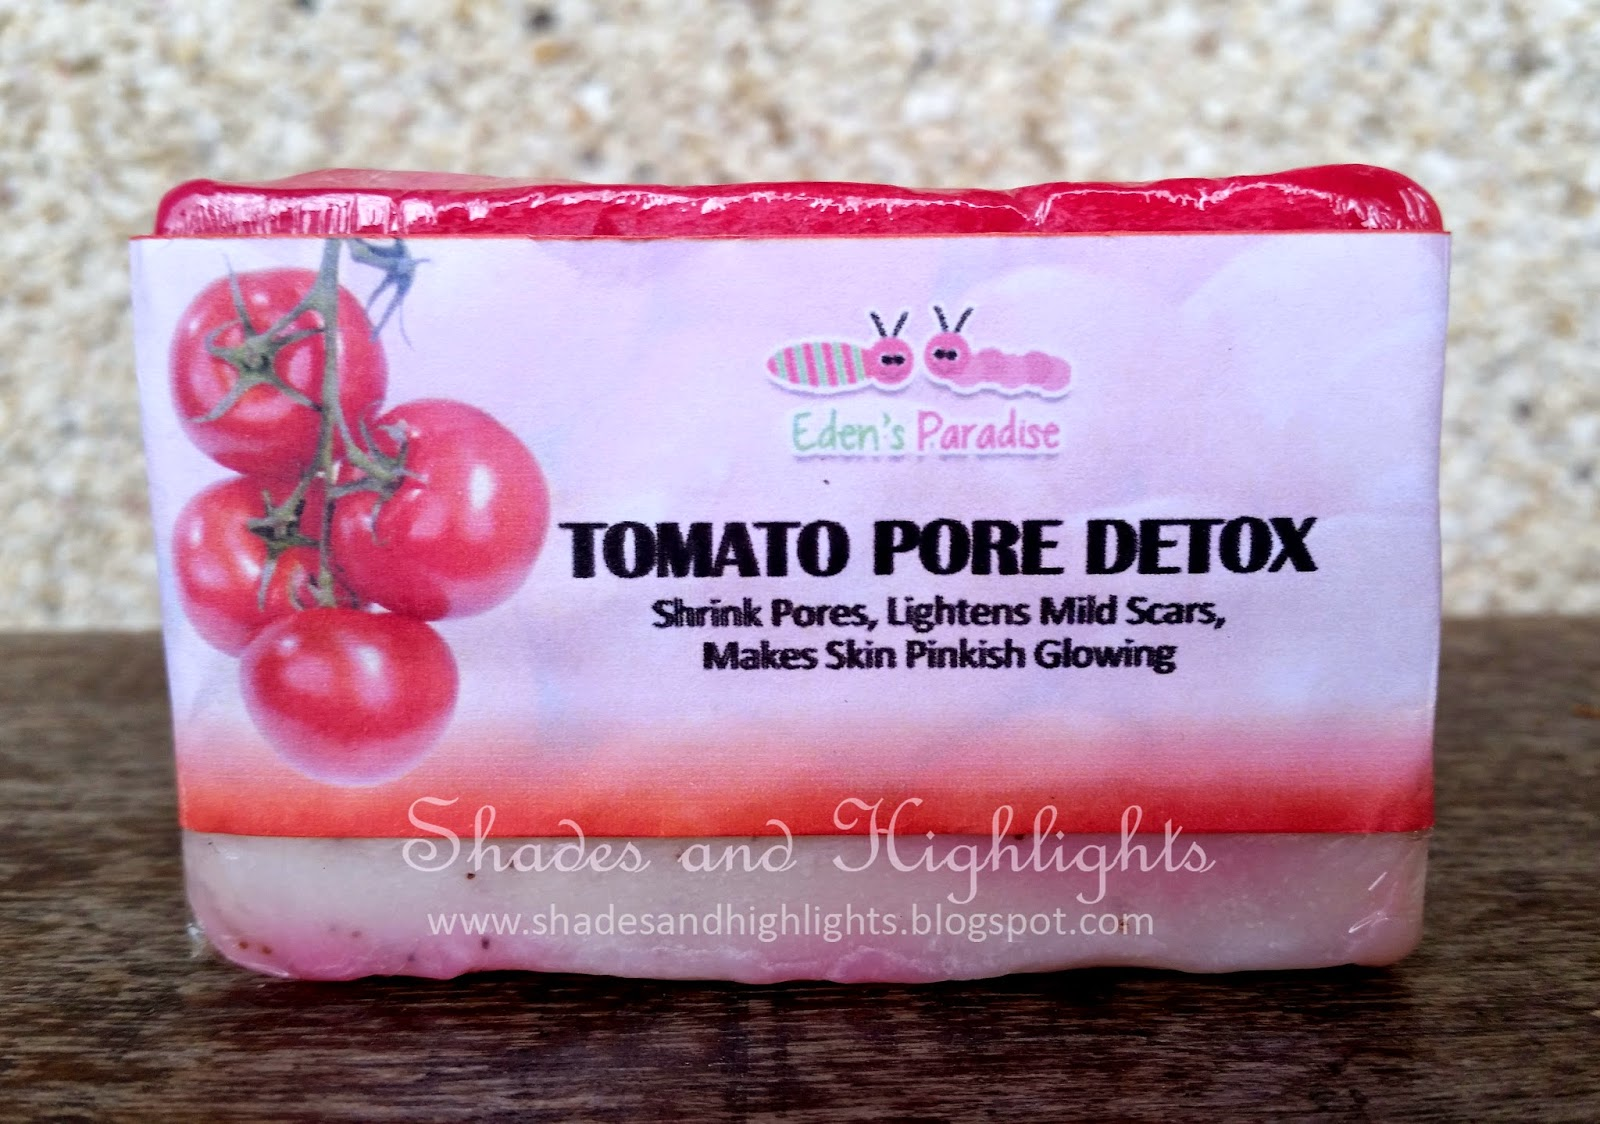 Eden's Paradise Tomato Pore Detox Soap Review